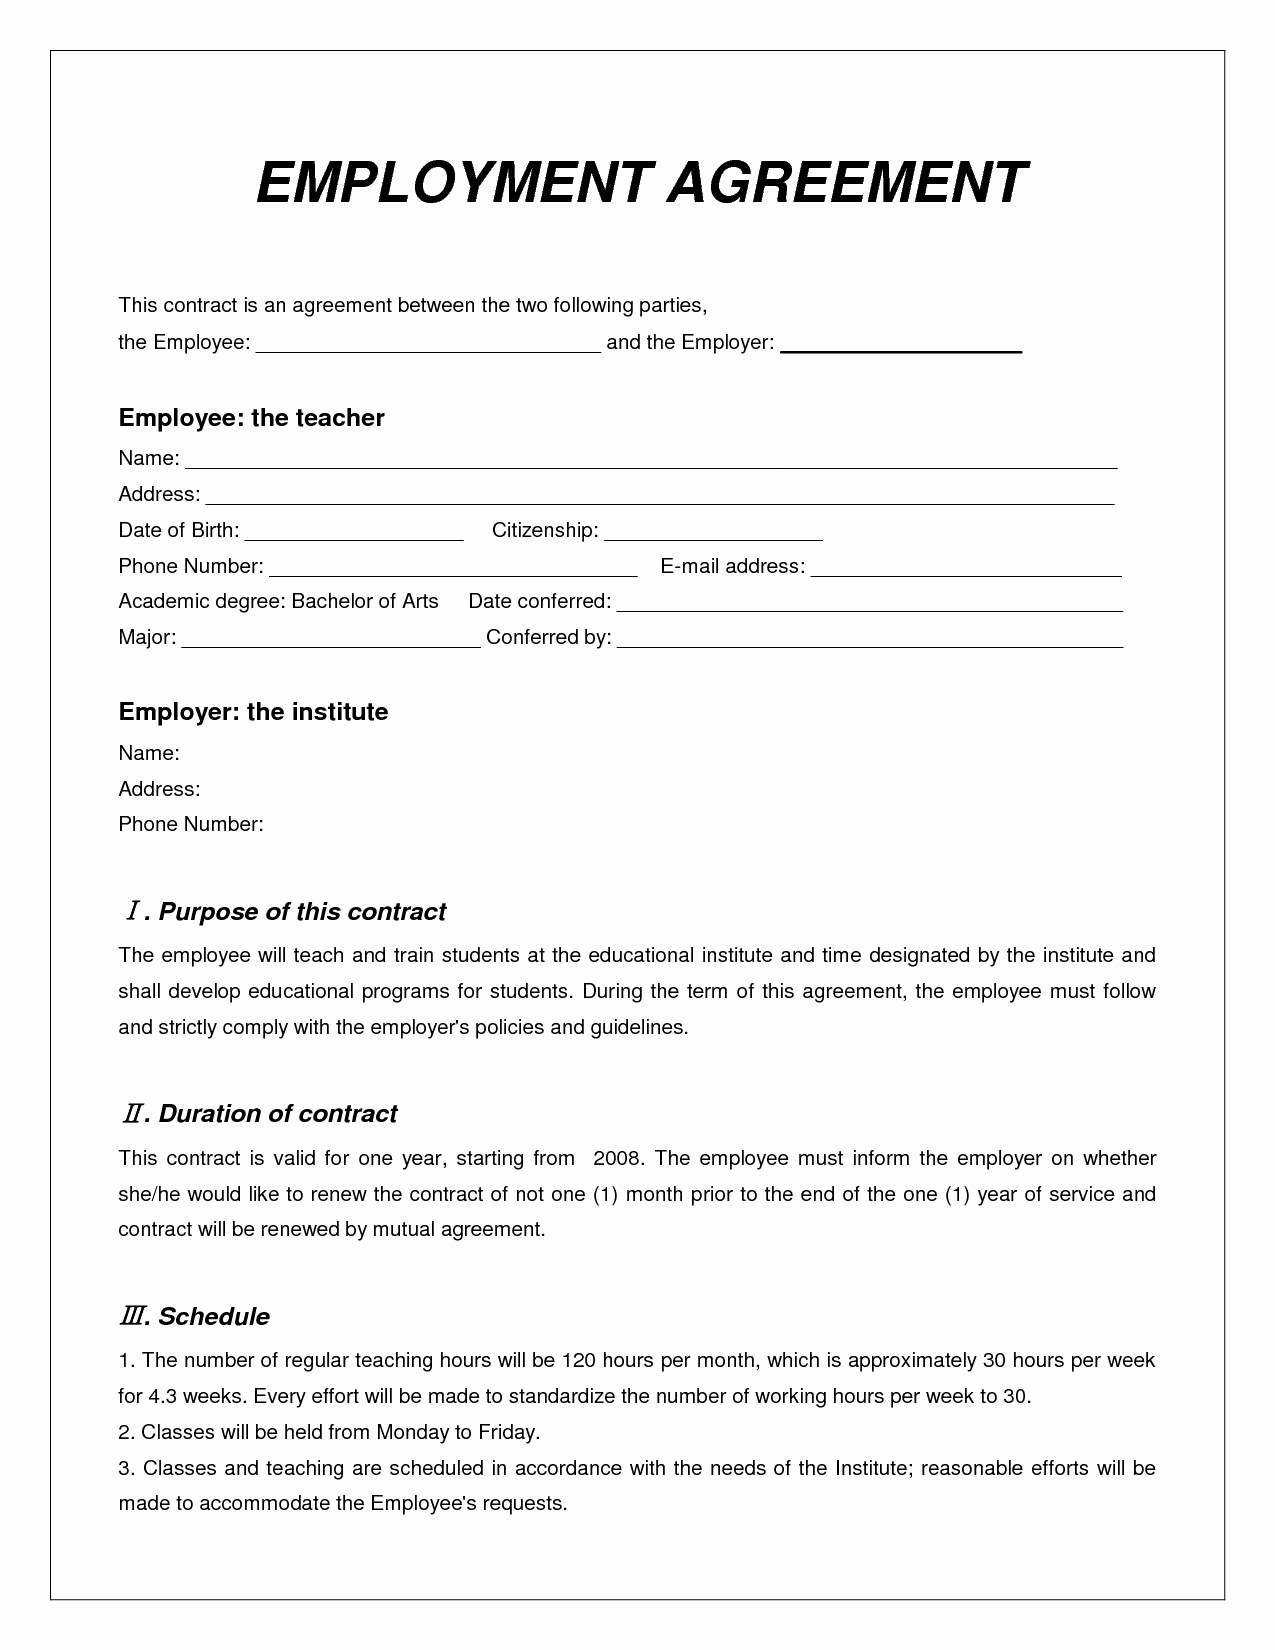 Free Employment Contract Templates Best Of Contract Employee Agreement Sample Templates Resume